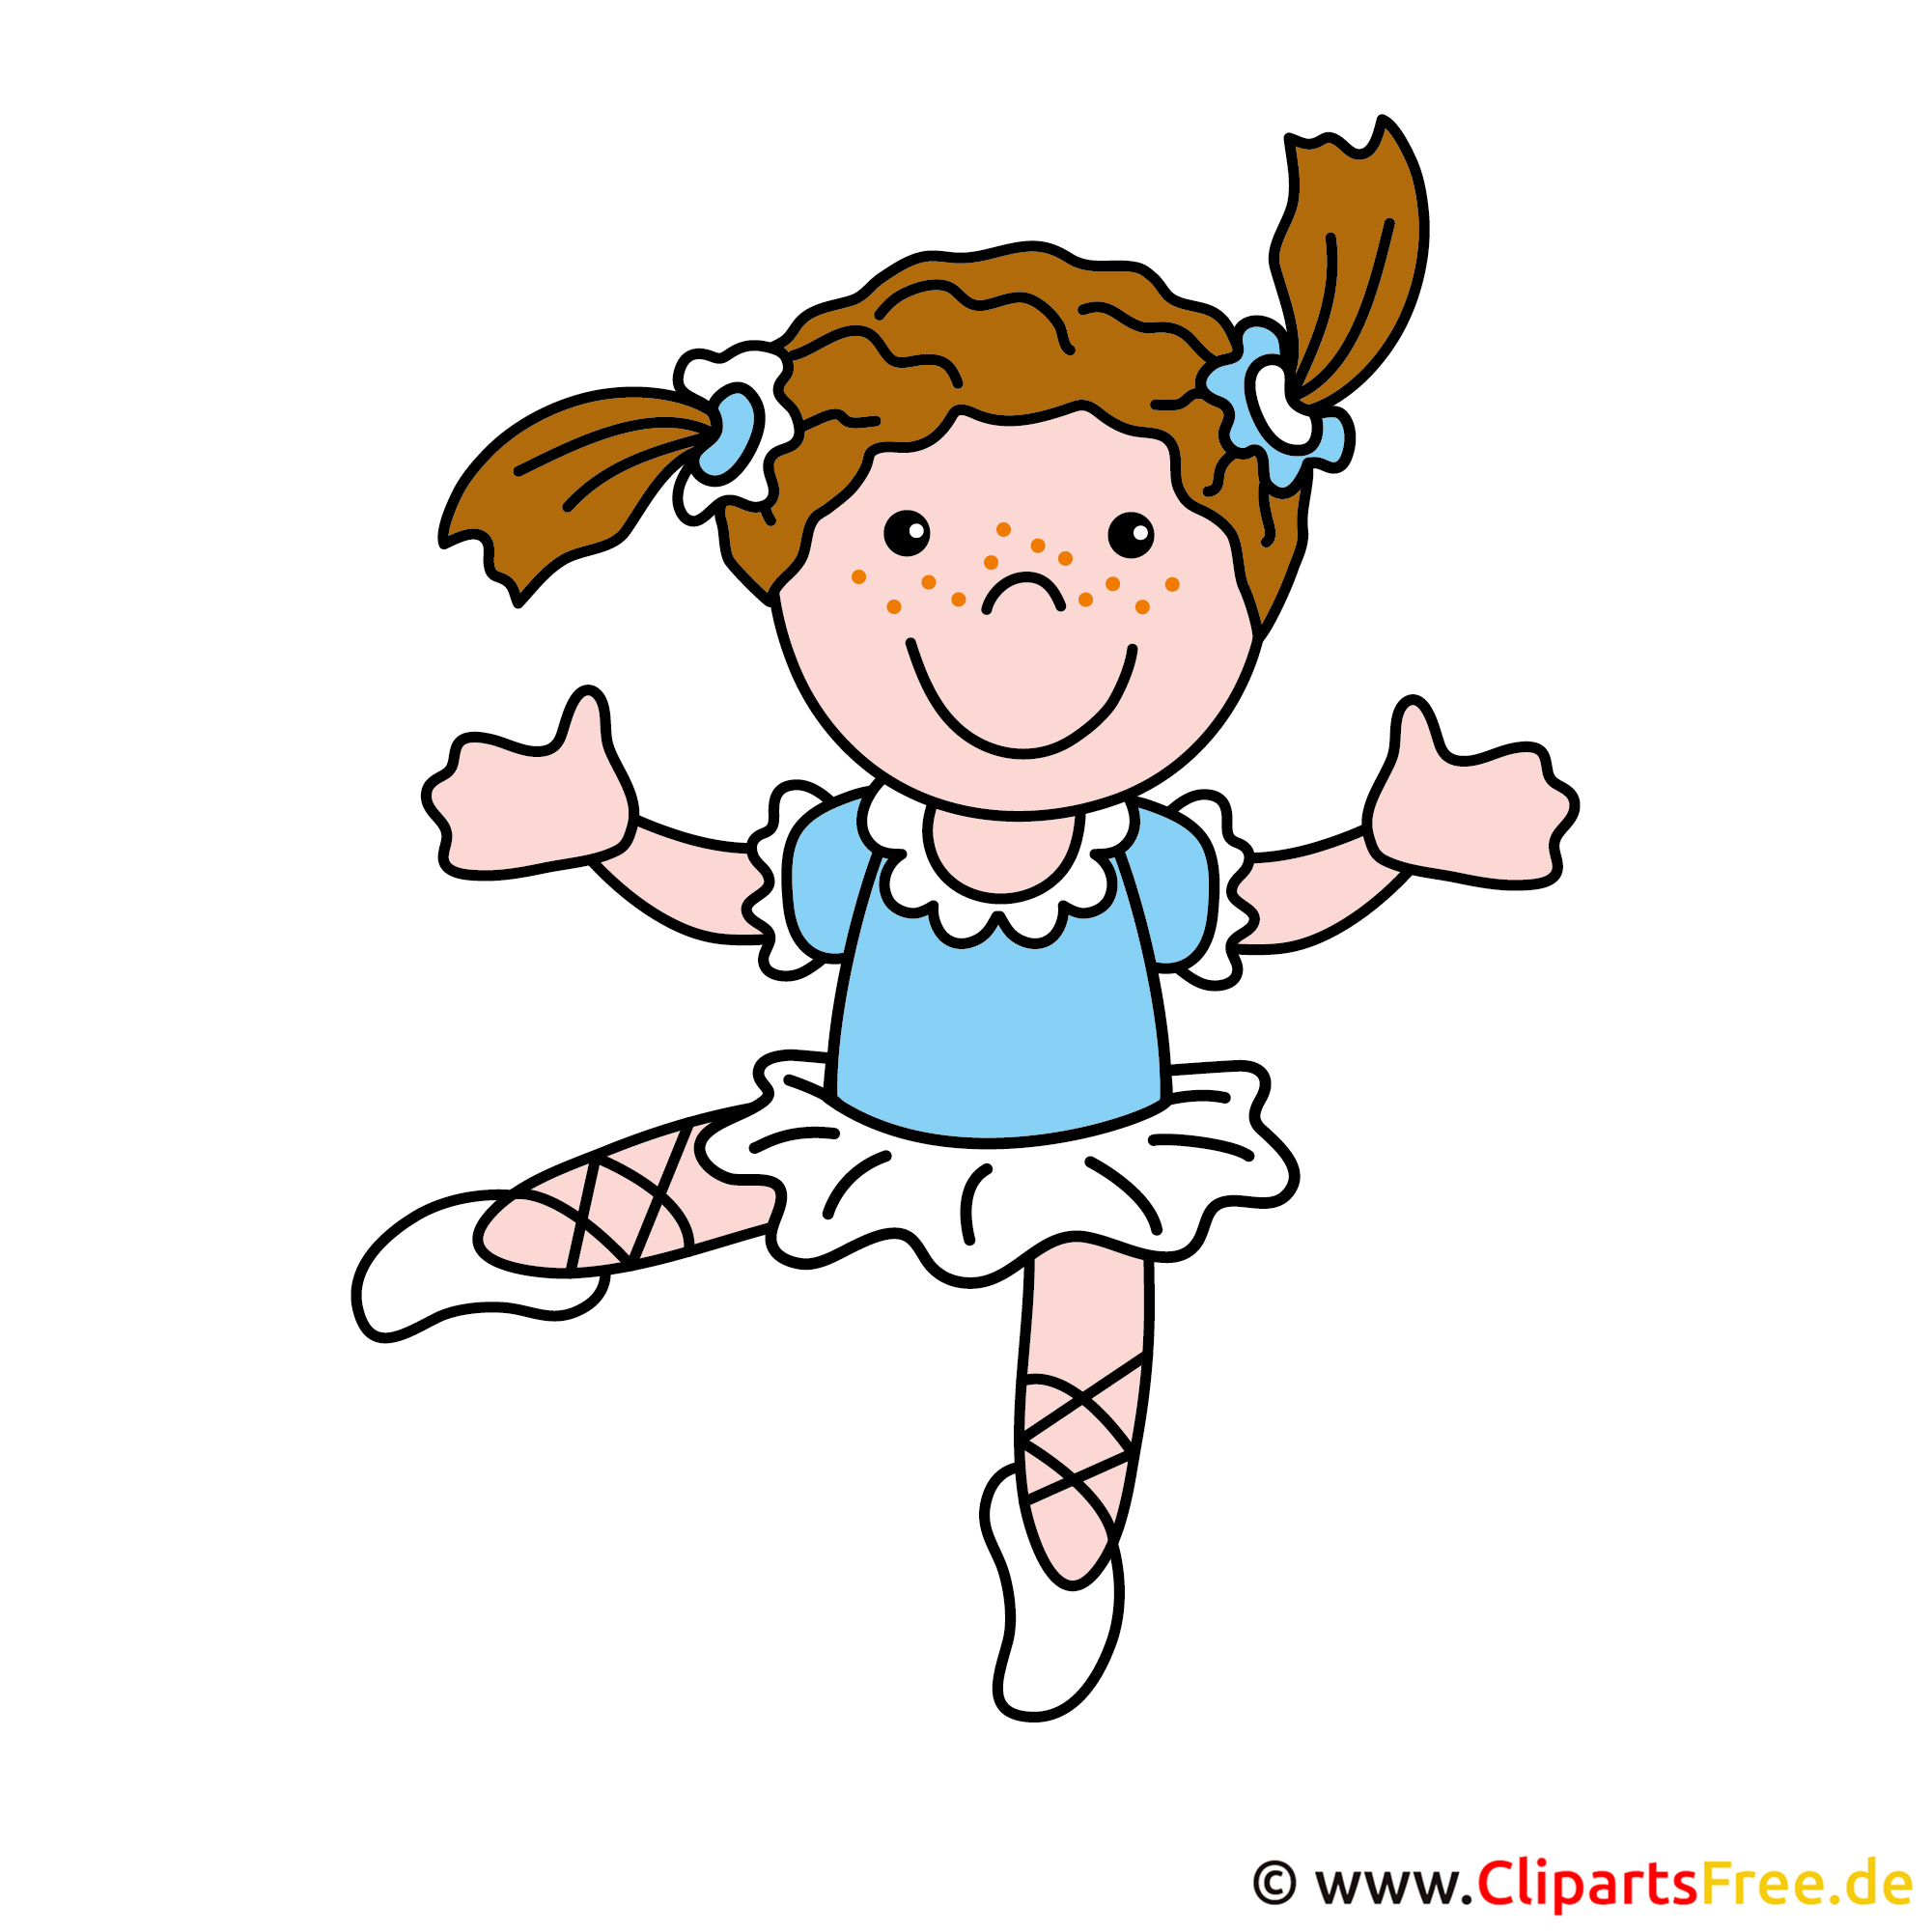 Ballerina Bild, Cartoon, Clipart free